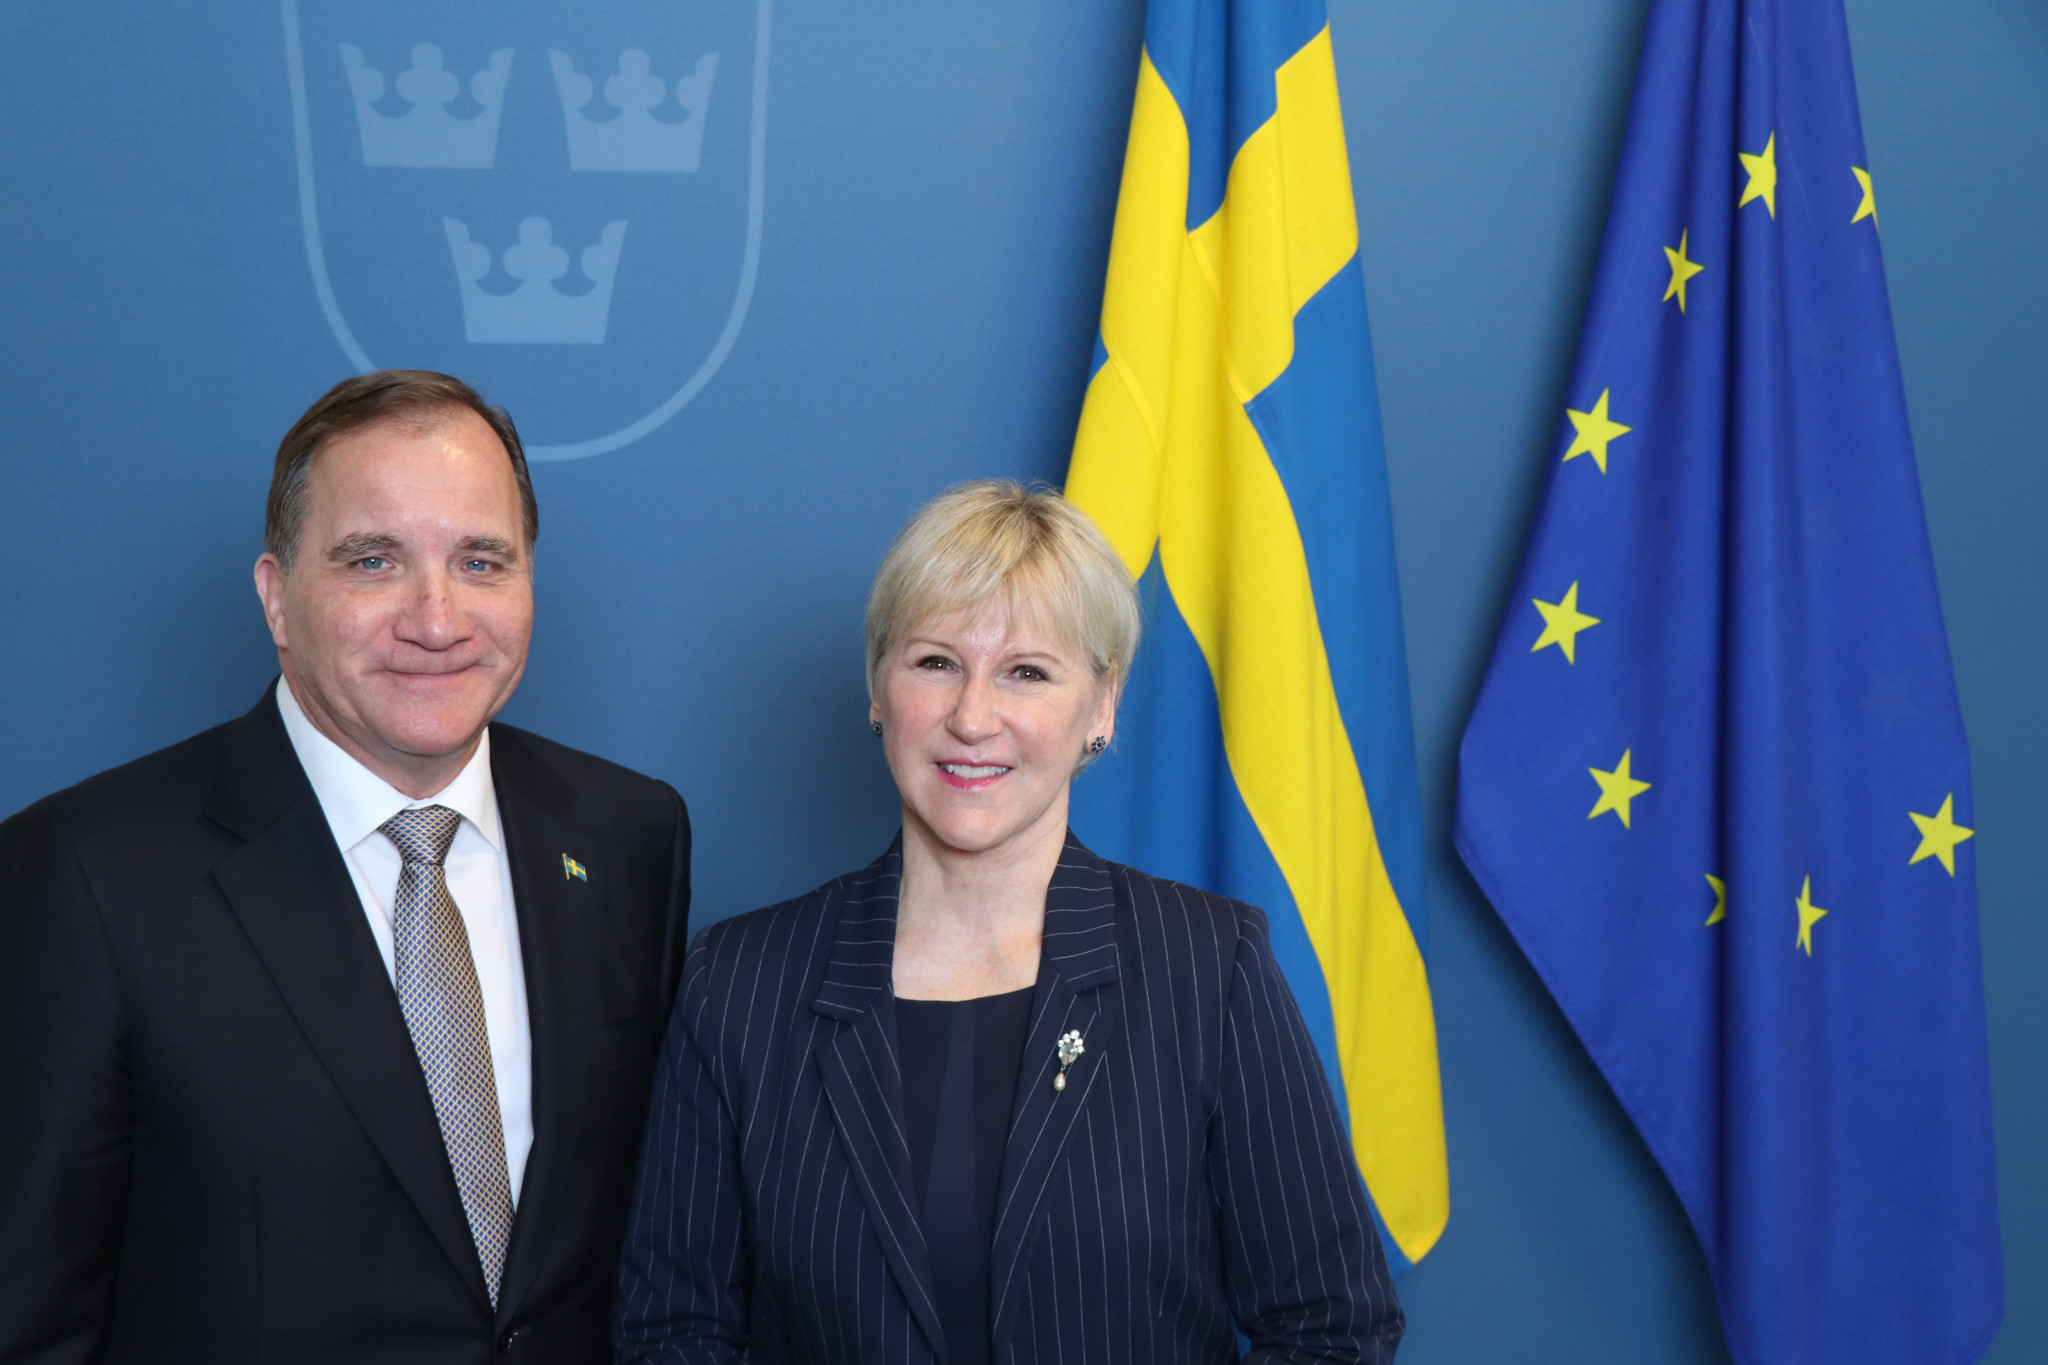 Sweden's Prime Minister Stefan Löfven and the Minister of Foreign Affairs Margot Wallström have thrown their support behind Stockholm Åre 2026 along with other leading politicians and top companies ©Stockholm 2026